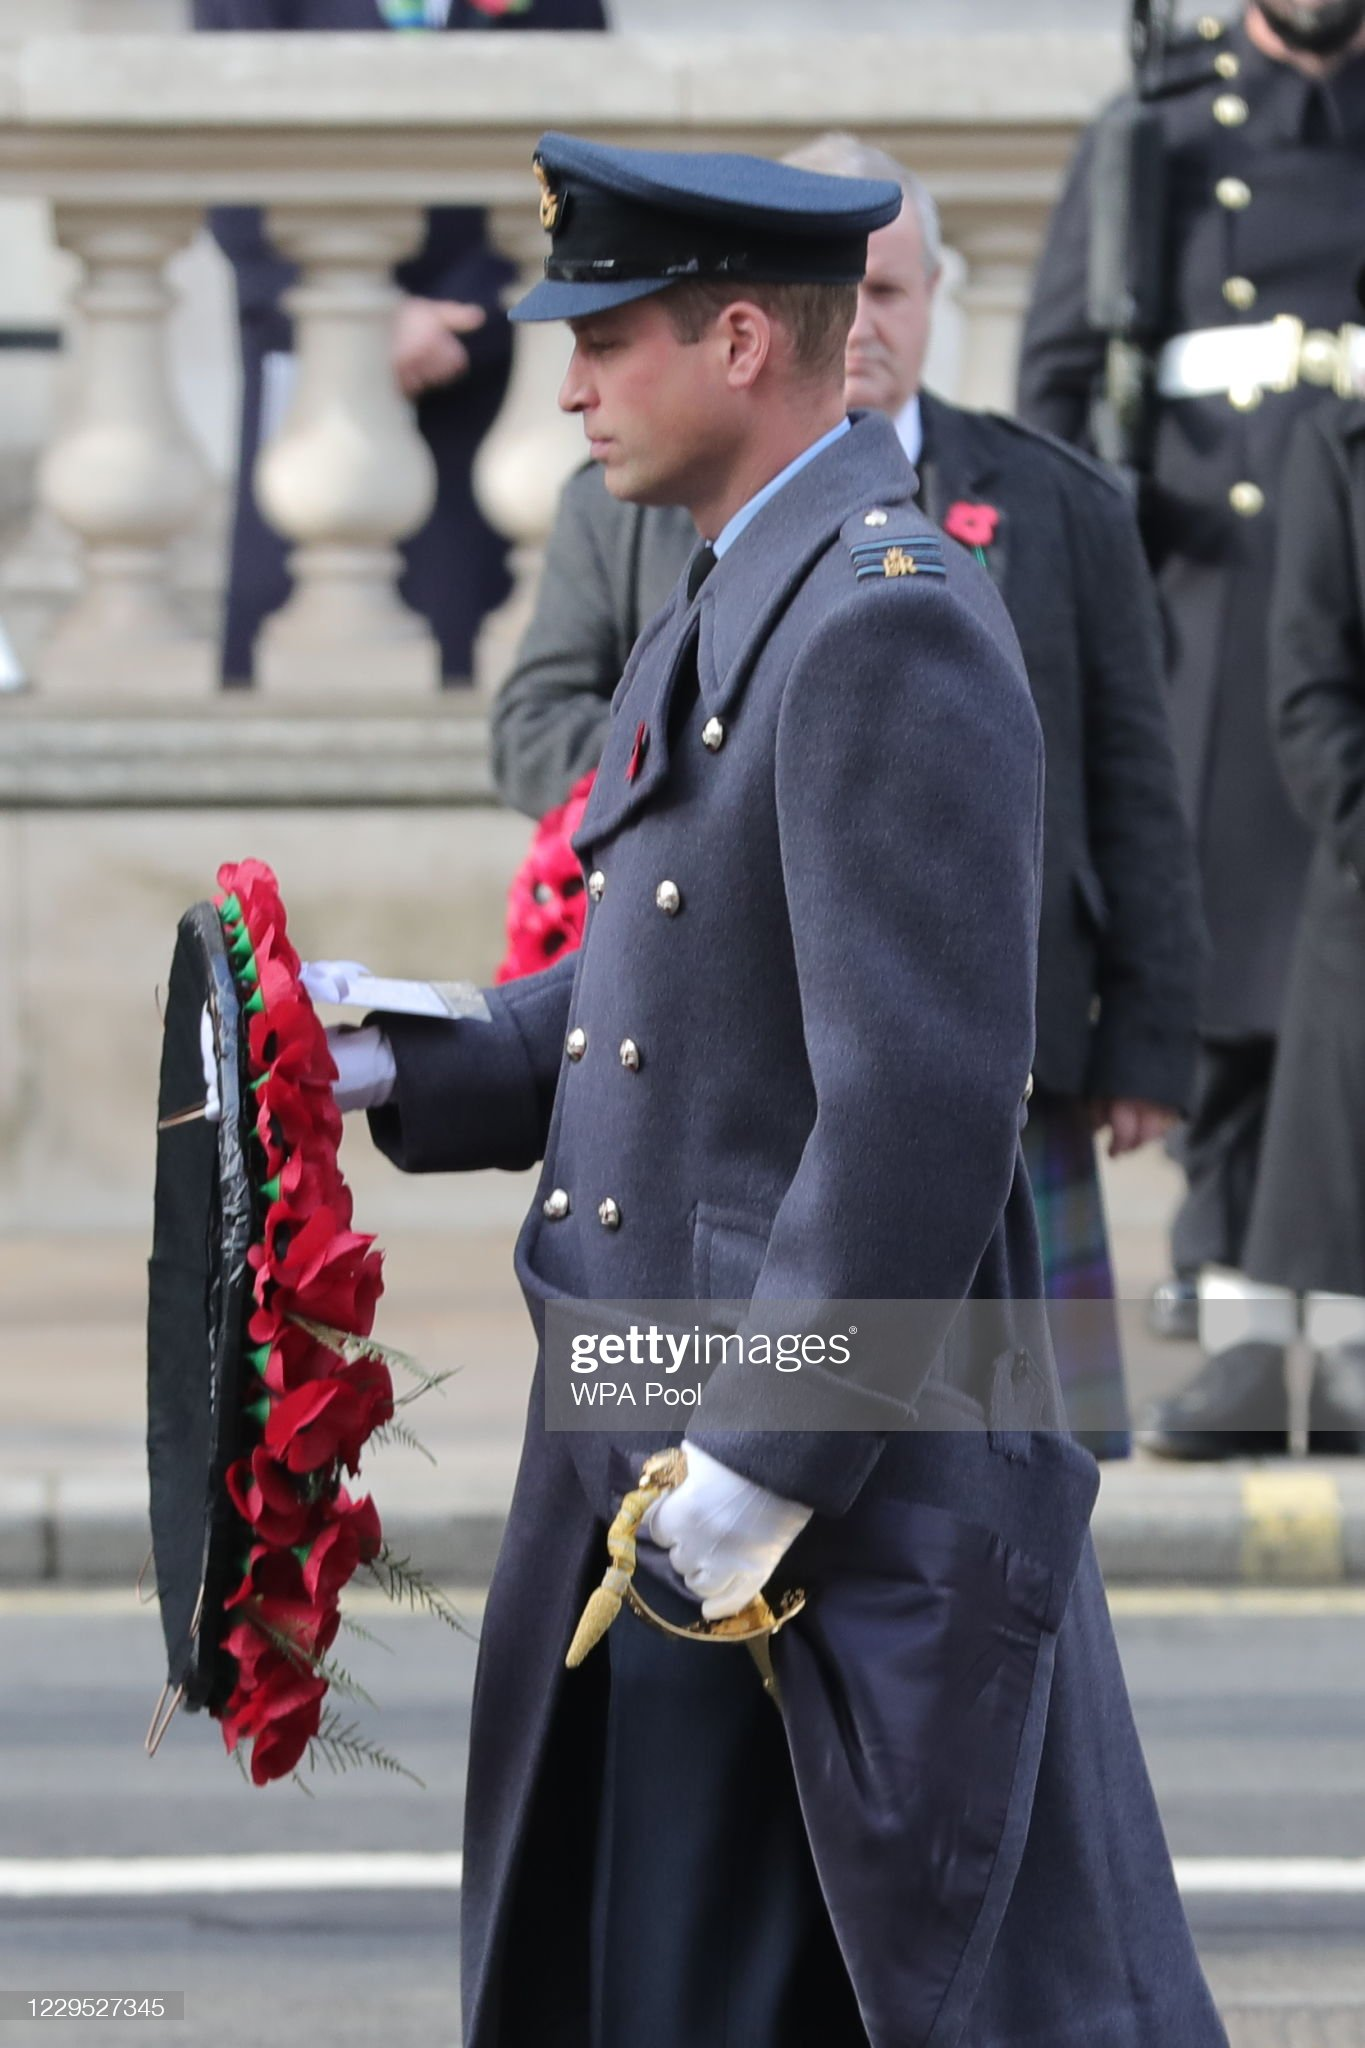 https://media.gettyimages.com/photos/britains-prince-william-duke-of-cambridge-lays-a-wreath-during-a-of-picture-id1229527345?s=2048x2048